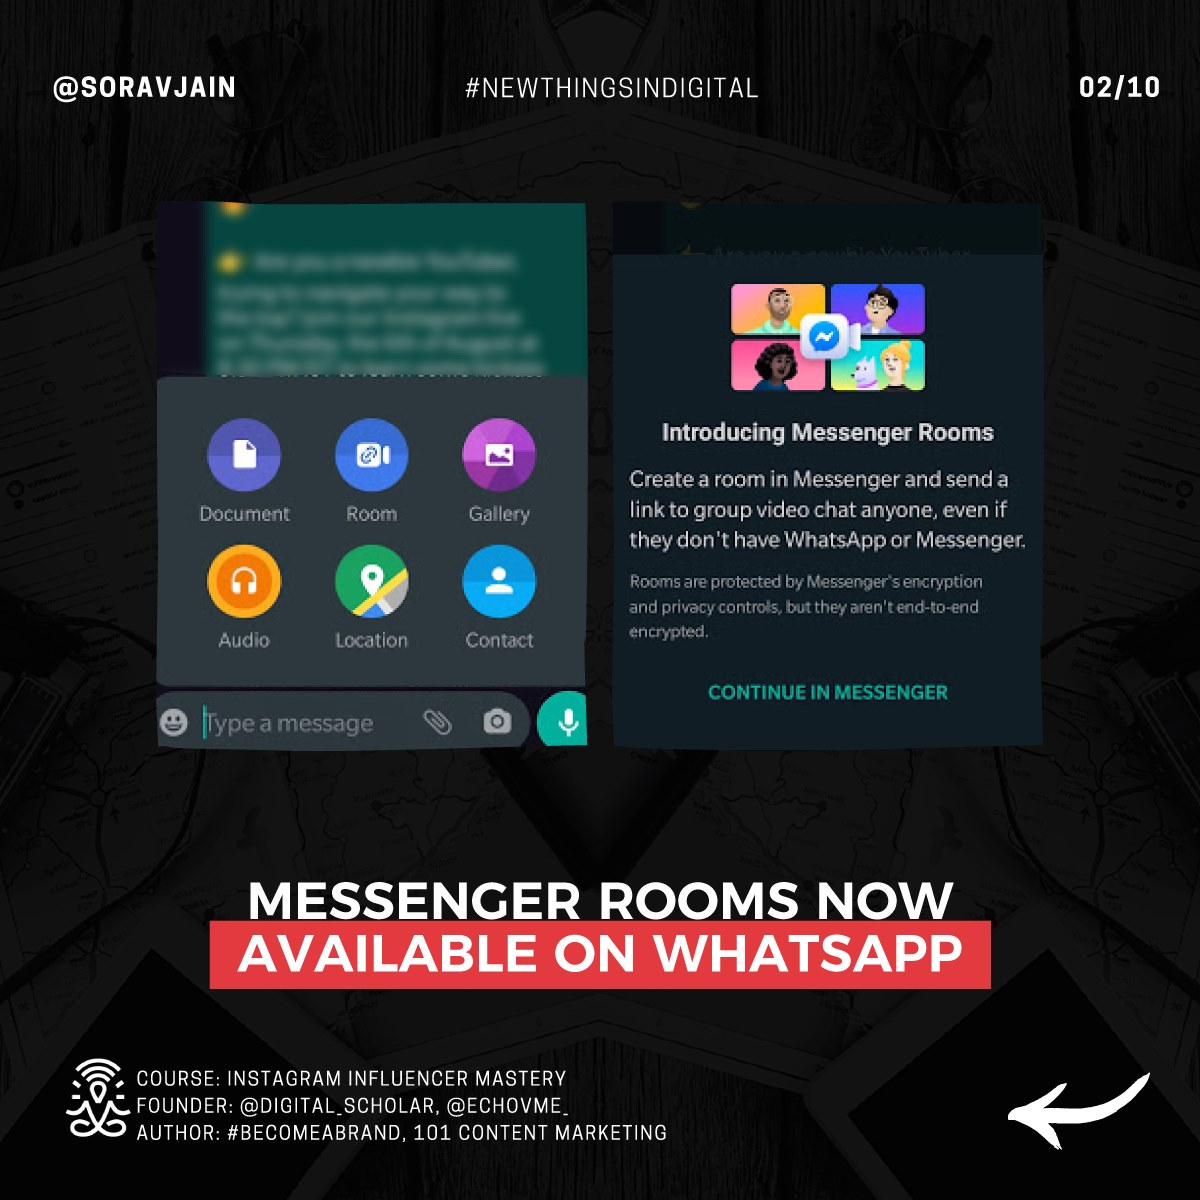 Messenger Rooms now available on WhatsApp